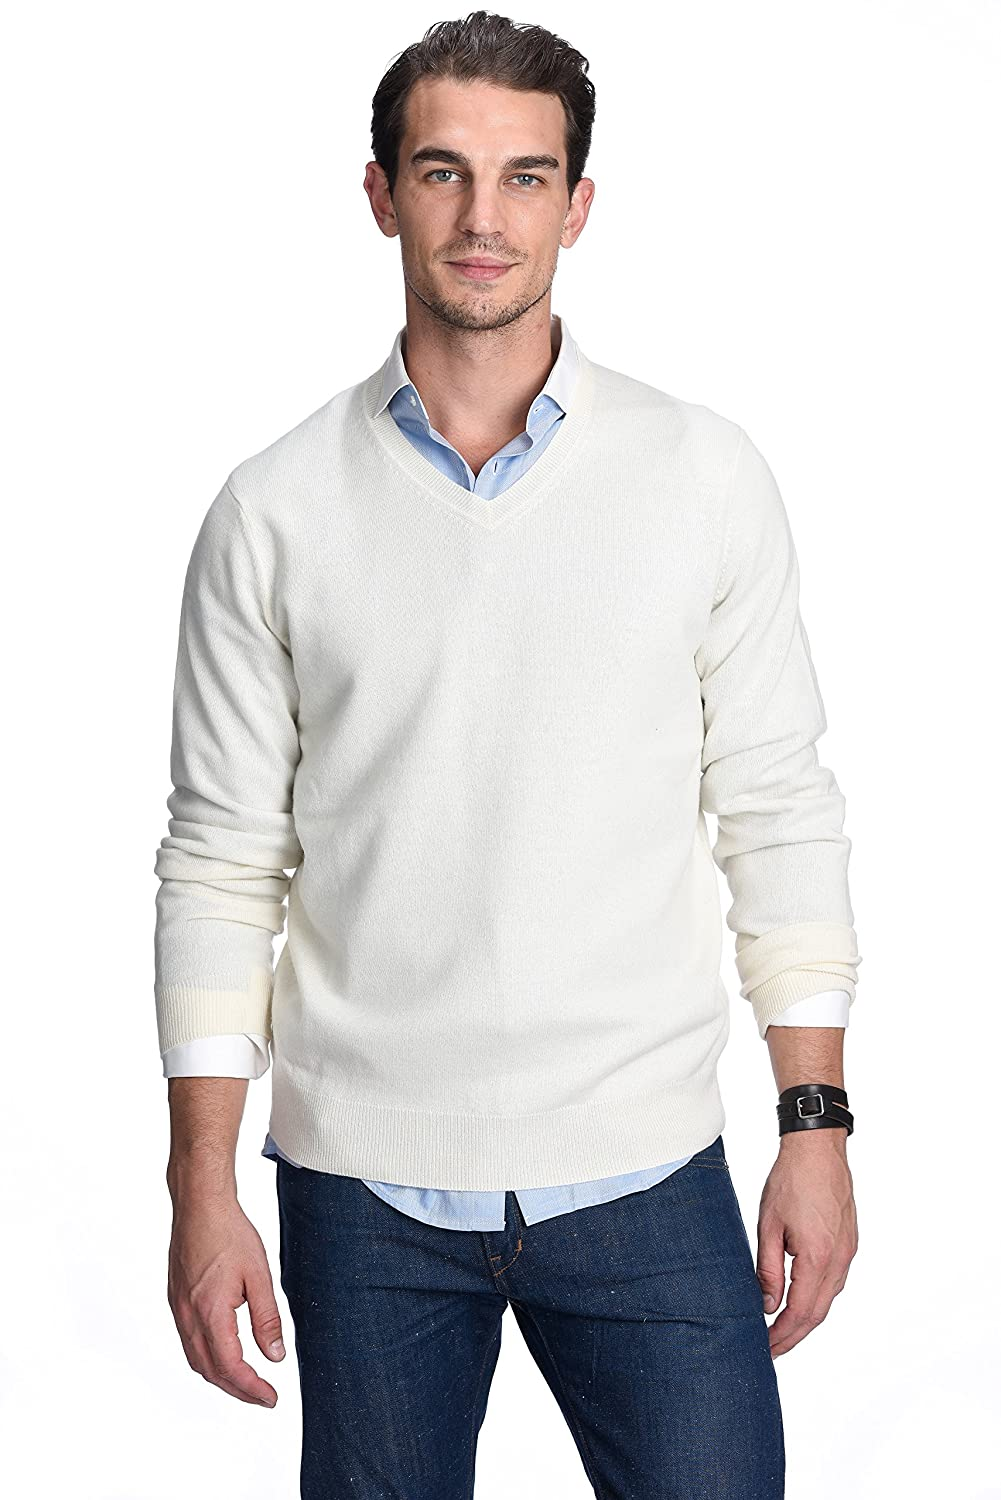 Williams Cashmere Men's 100% Cashmere V-Neck Sweater at Amazon ...